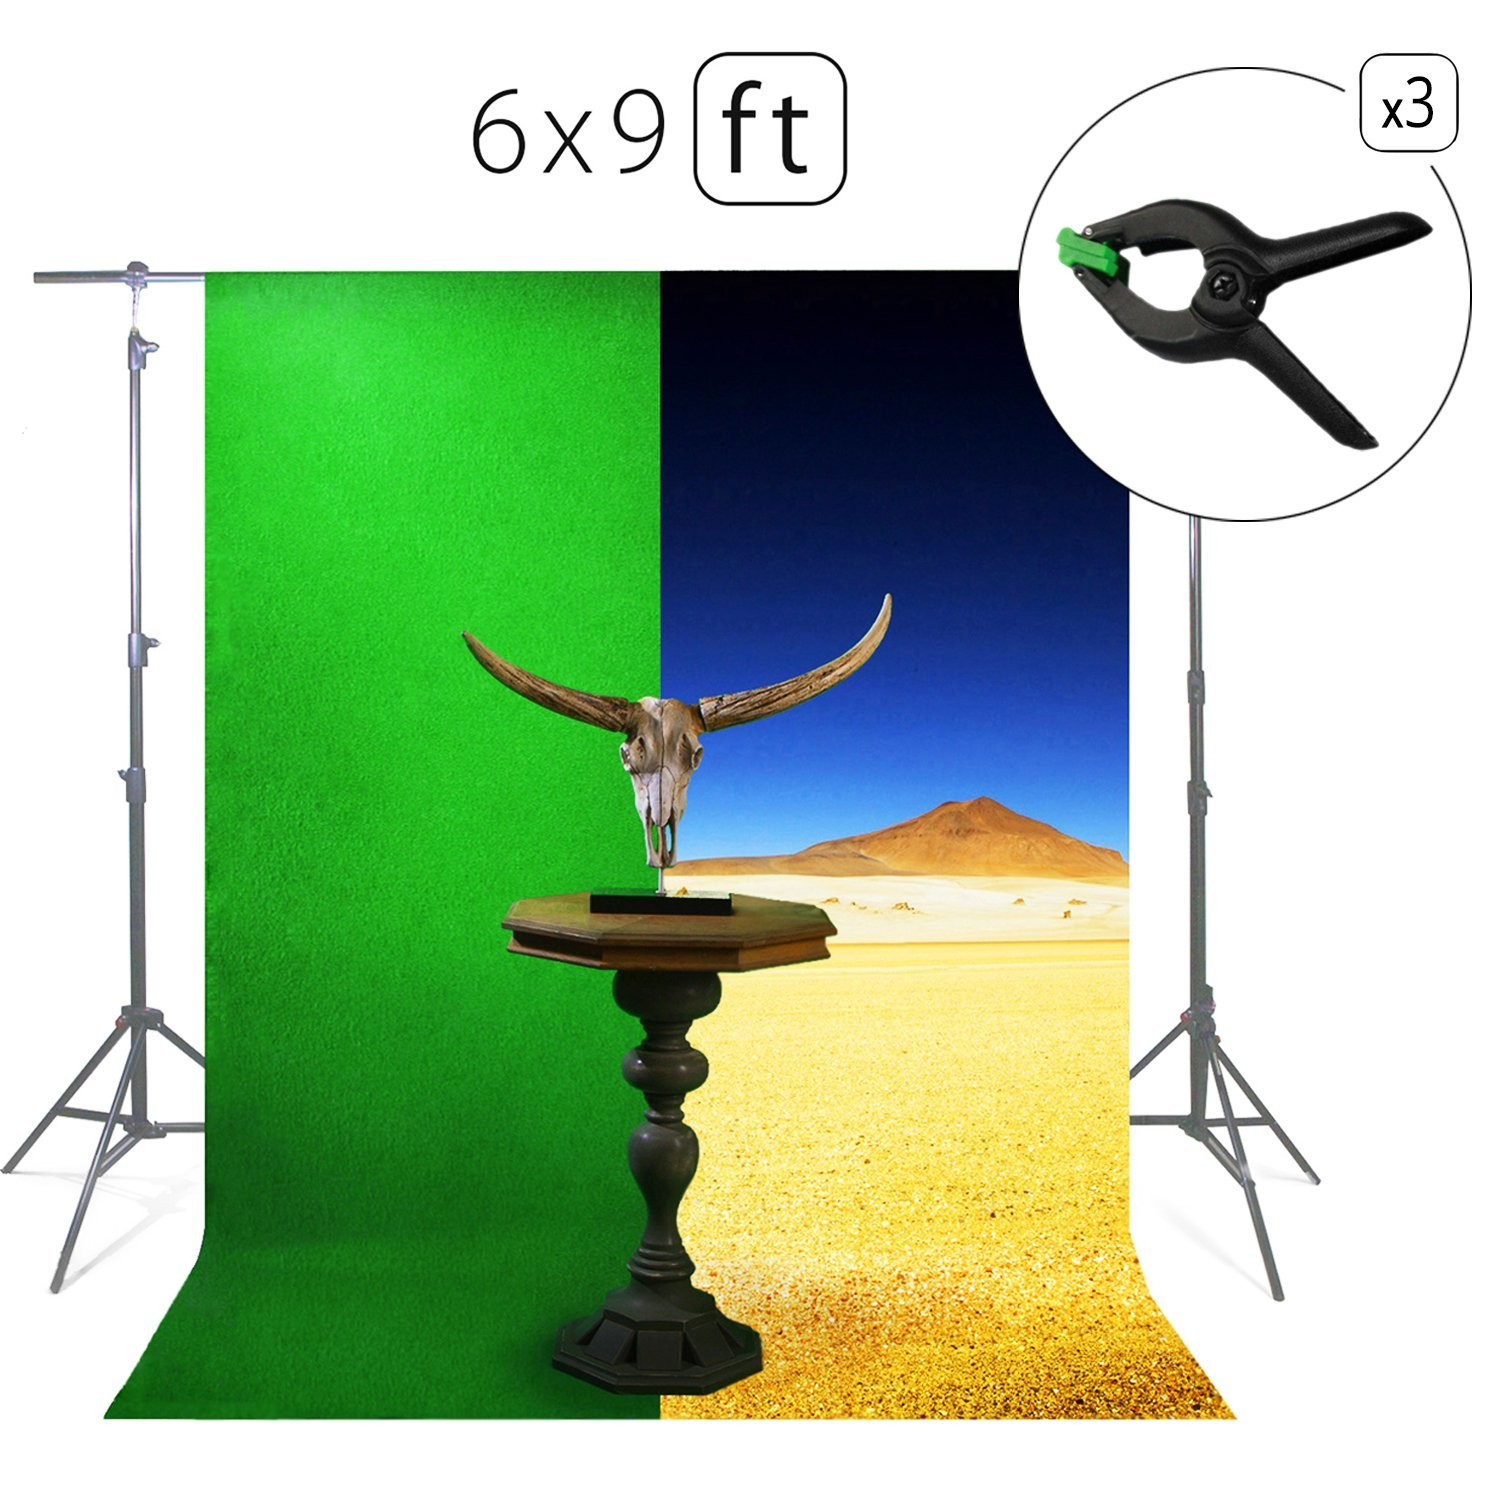 Green Screen Photo Backdrop or Background 6х9 Ft – 100% Cotton Muslin Chromakey Curtain Collapsible Set for Photography Studio Videos Gaming - Bonus 3 Backdrop Clamps & a Carry Bag - MUVR lab by MUVR lab